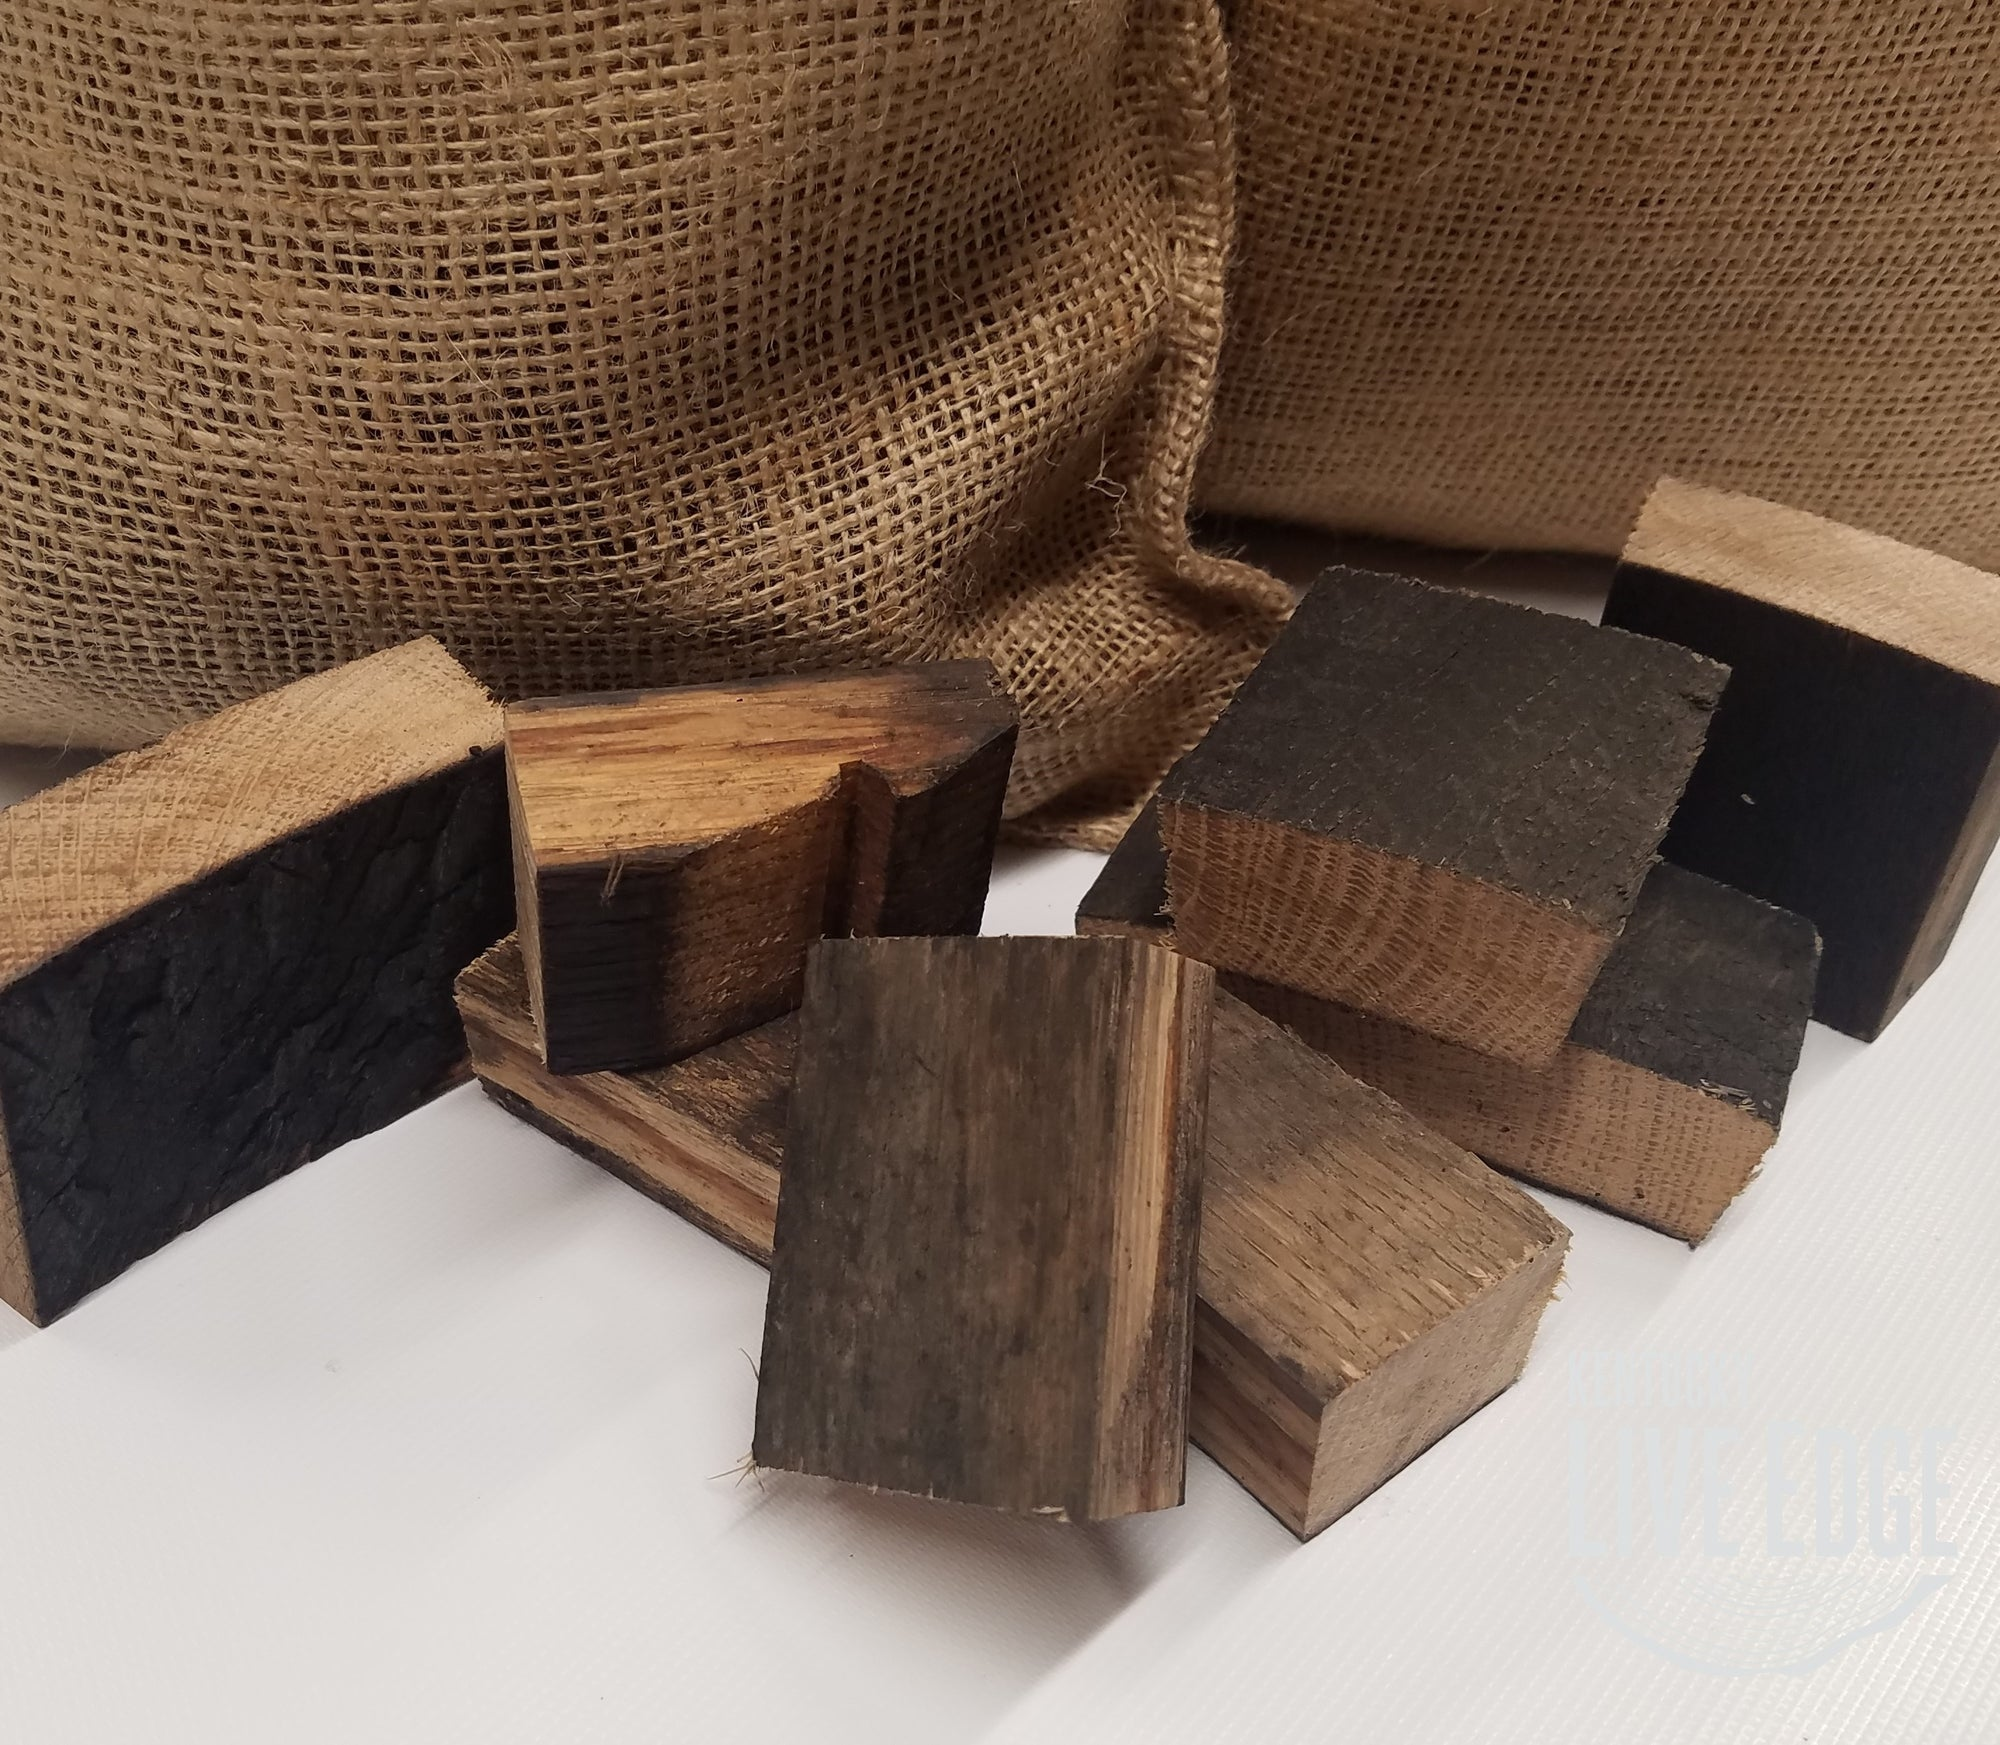 Bourbon Barrel Smoker Chunks- Smoker Chips- BBQ- Grill- Pitmaster- Reclaimed Wood- White Oak- Seasoned Wood- Bourbon- Gift- Kentucky- Cook